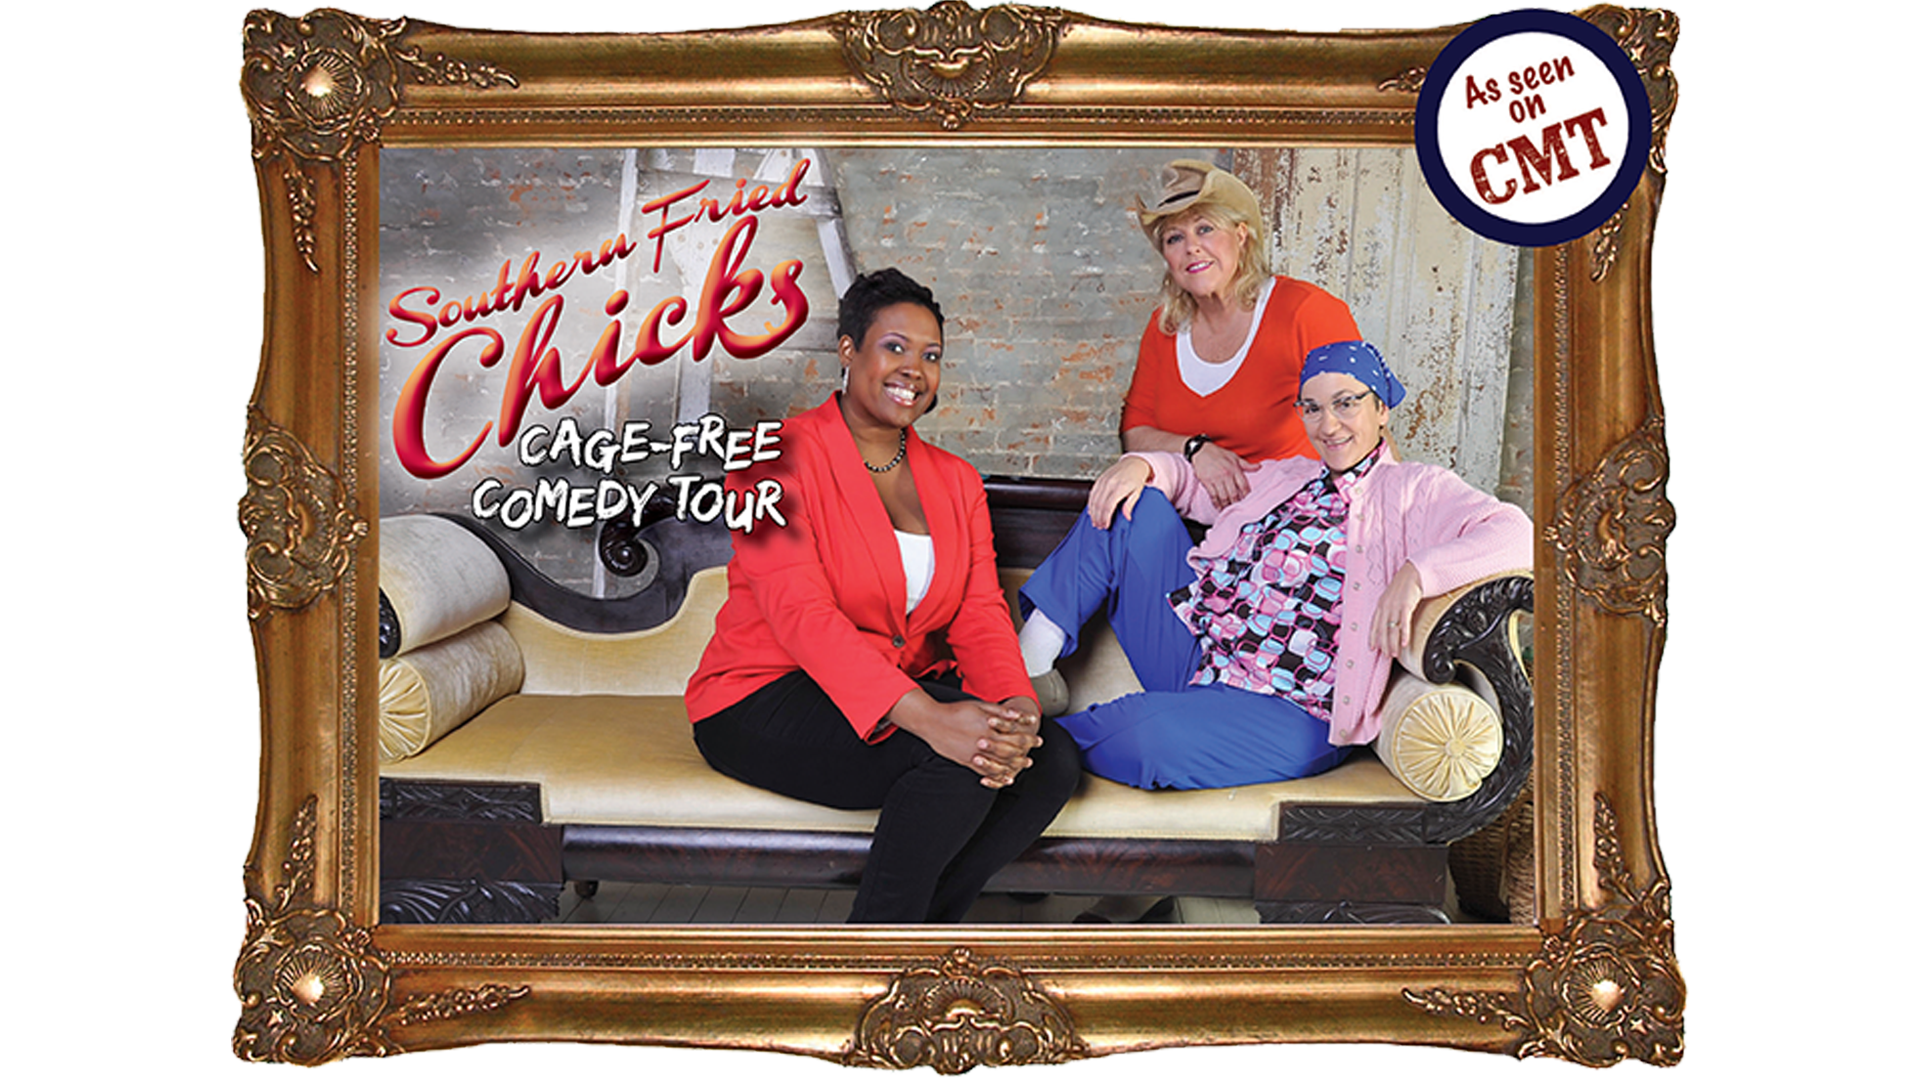 Southern Fried Chicks: Cage-Free Comedy Tour